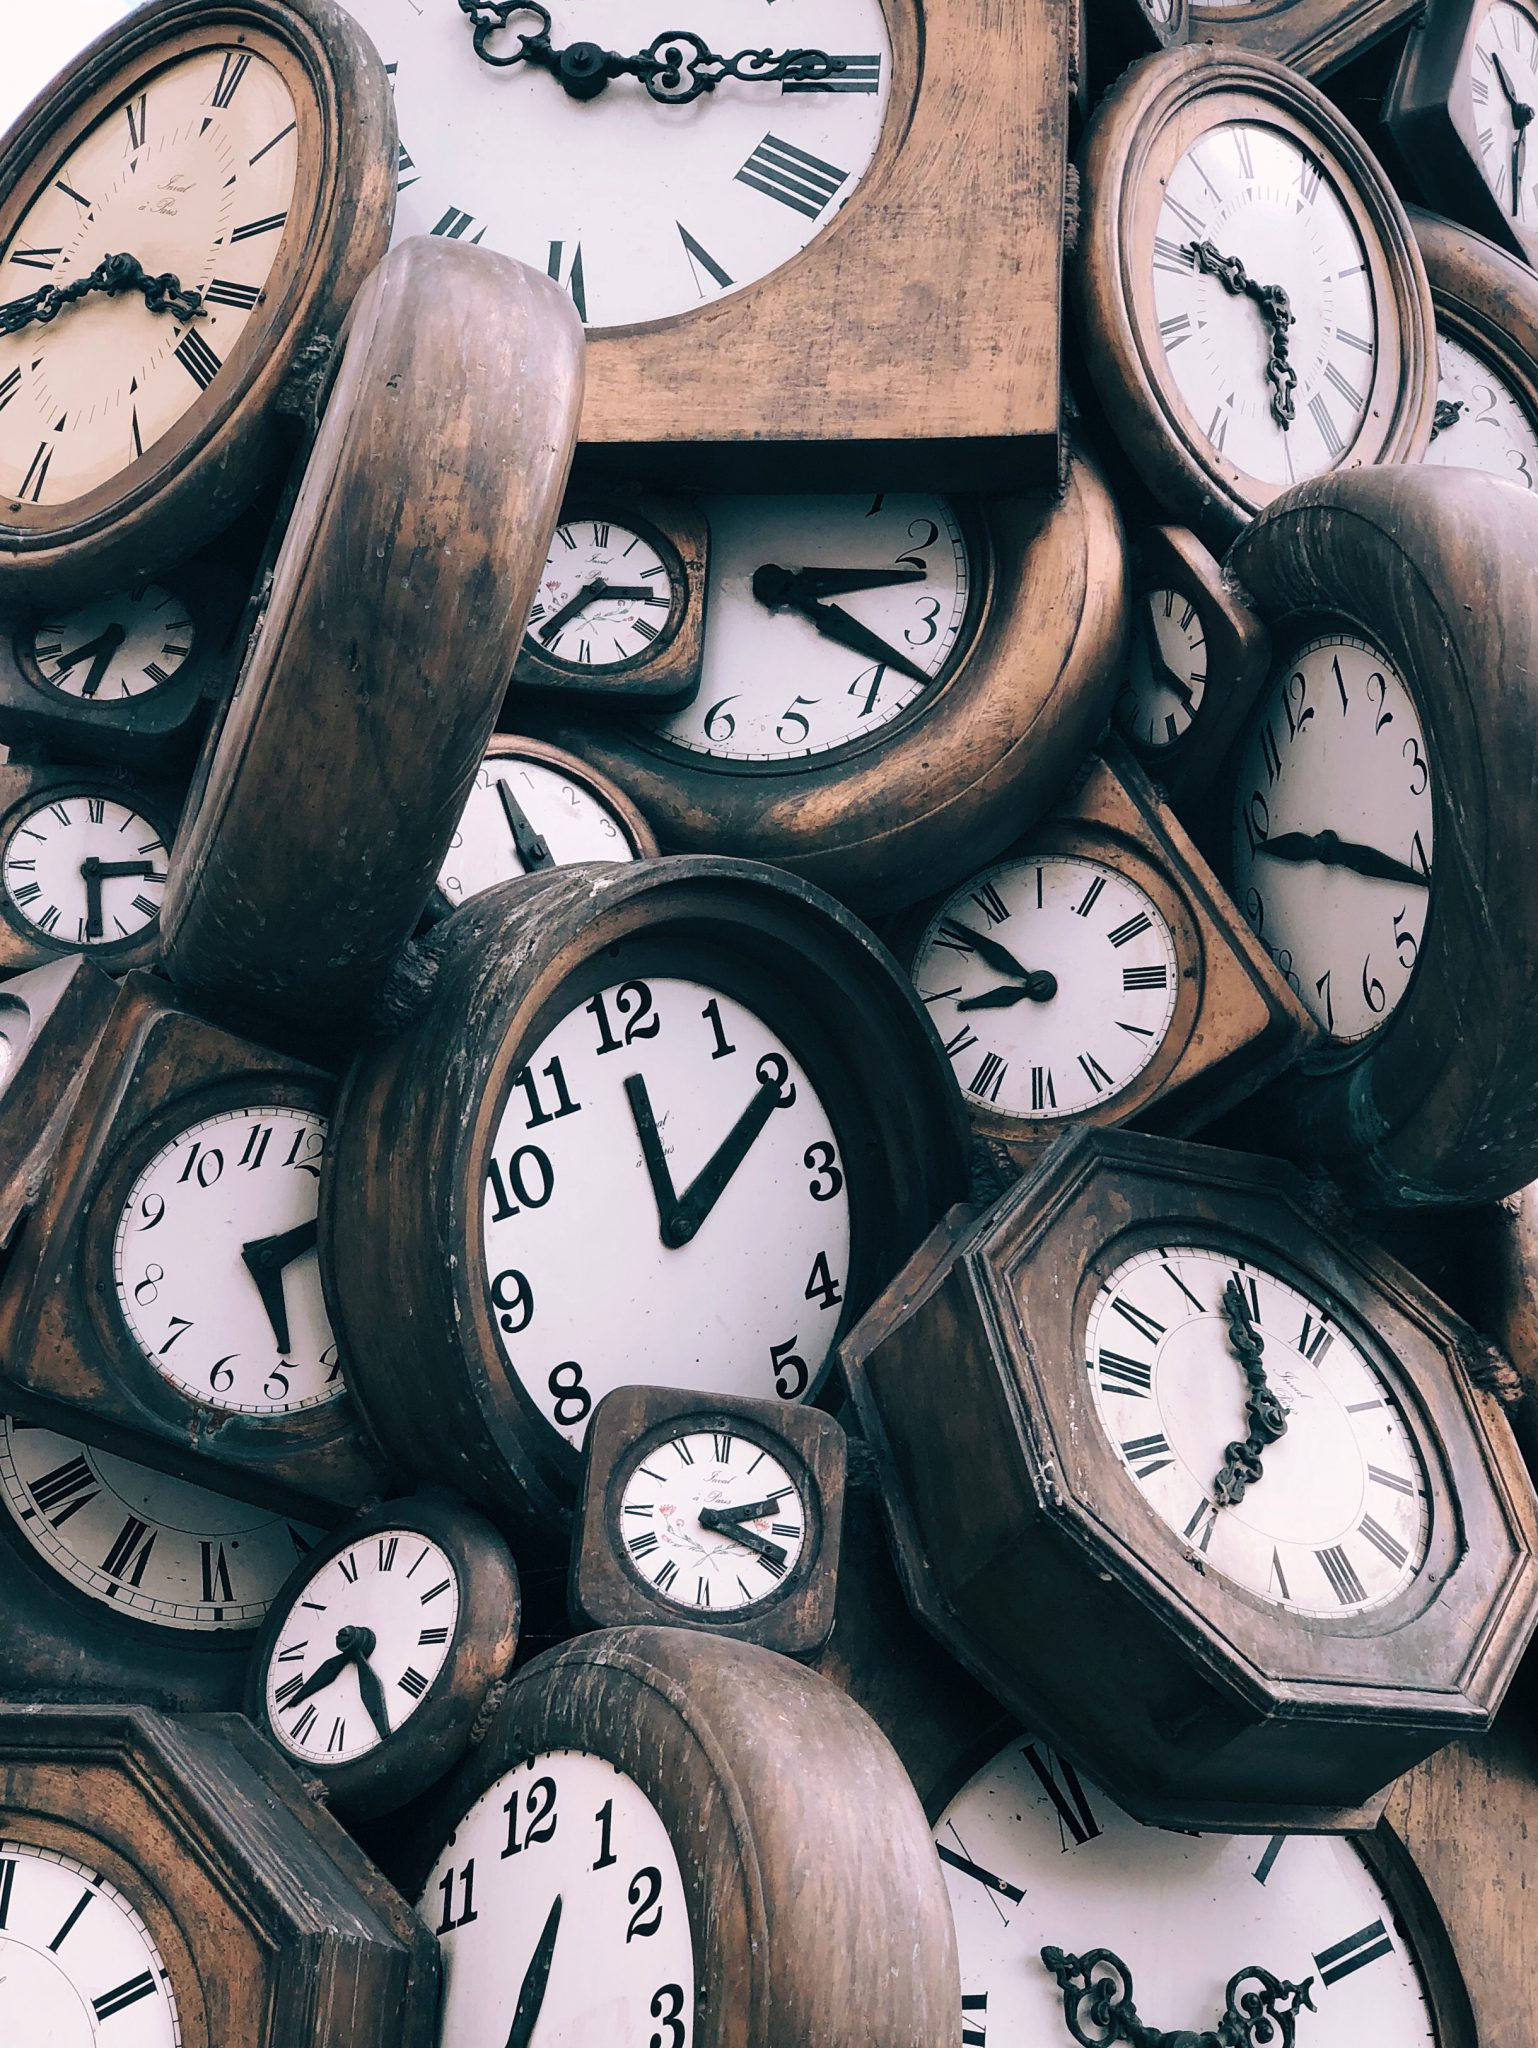 Clocks representing the ticking of time and deadlines for Self-Assessment tax